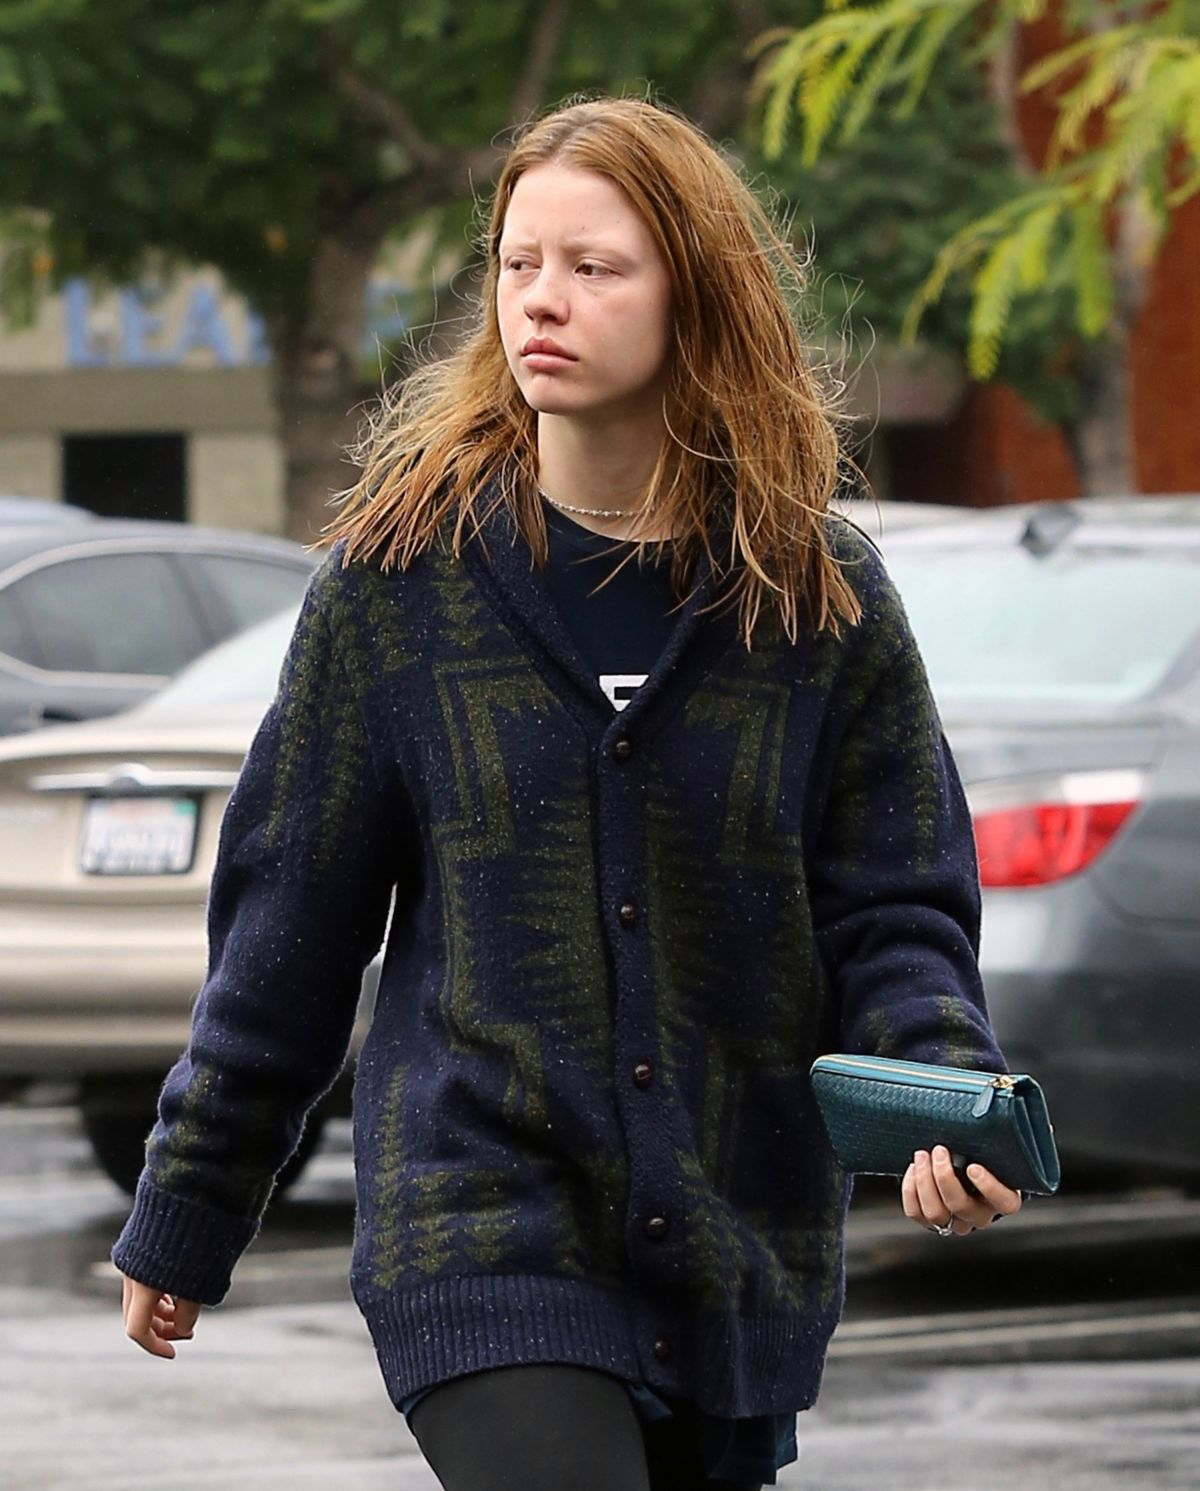 Mia Goth naked (96 photo), Sexy, Cleavage, Twitter, panties 2018